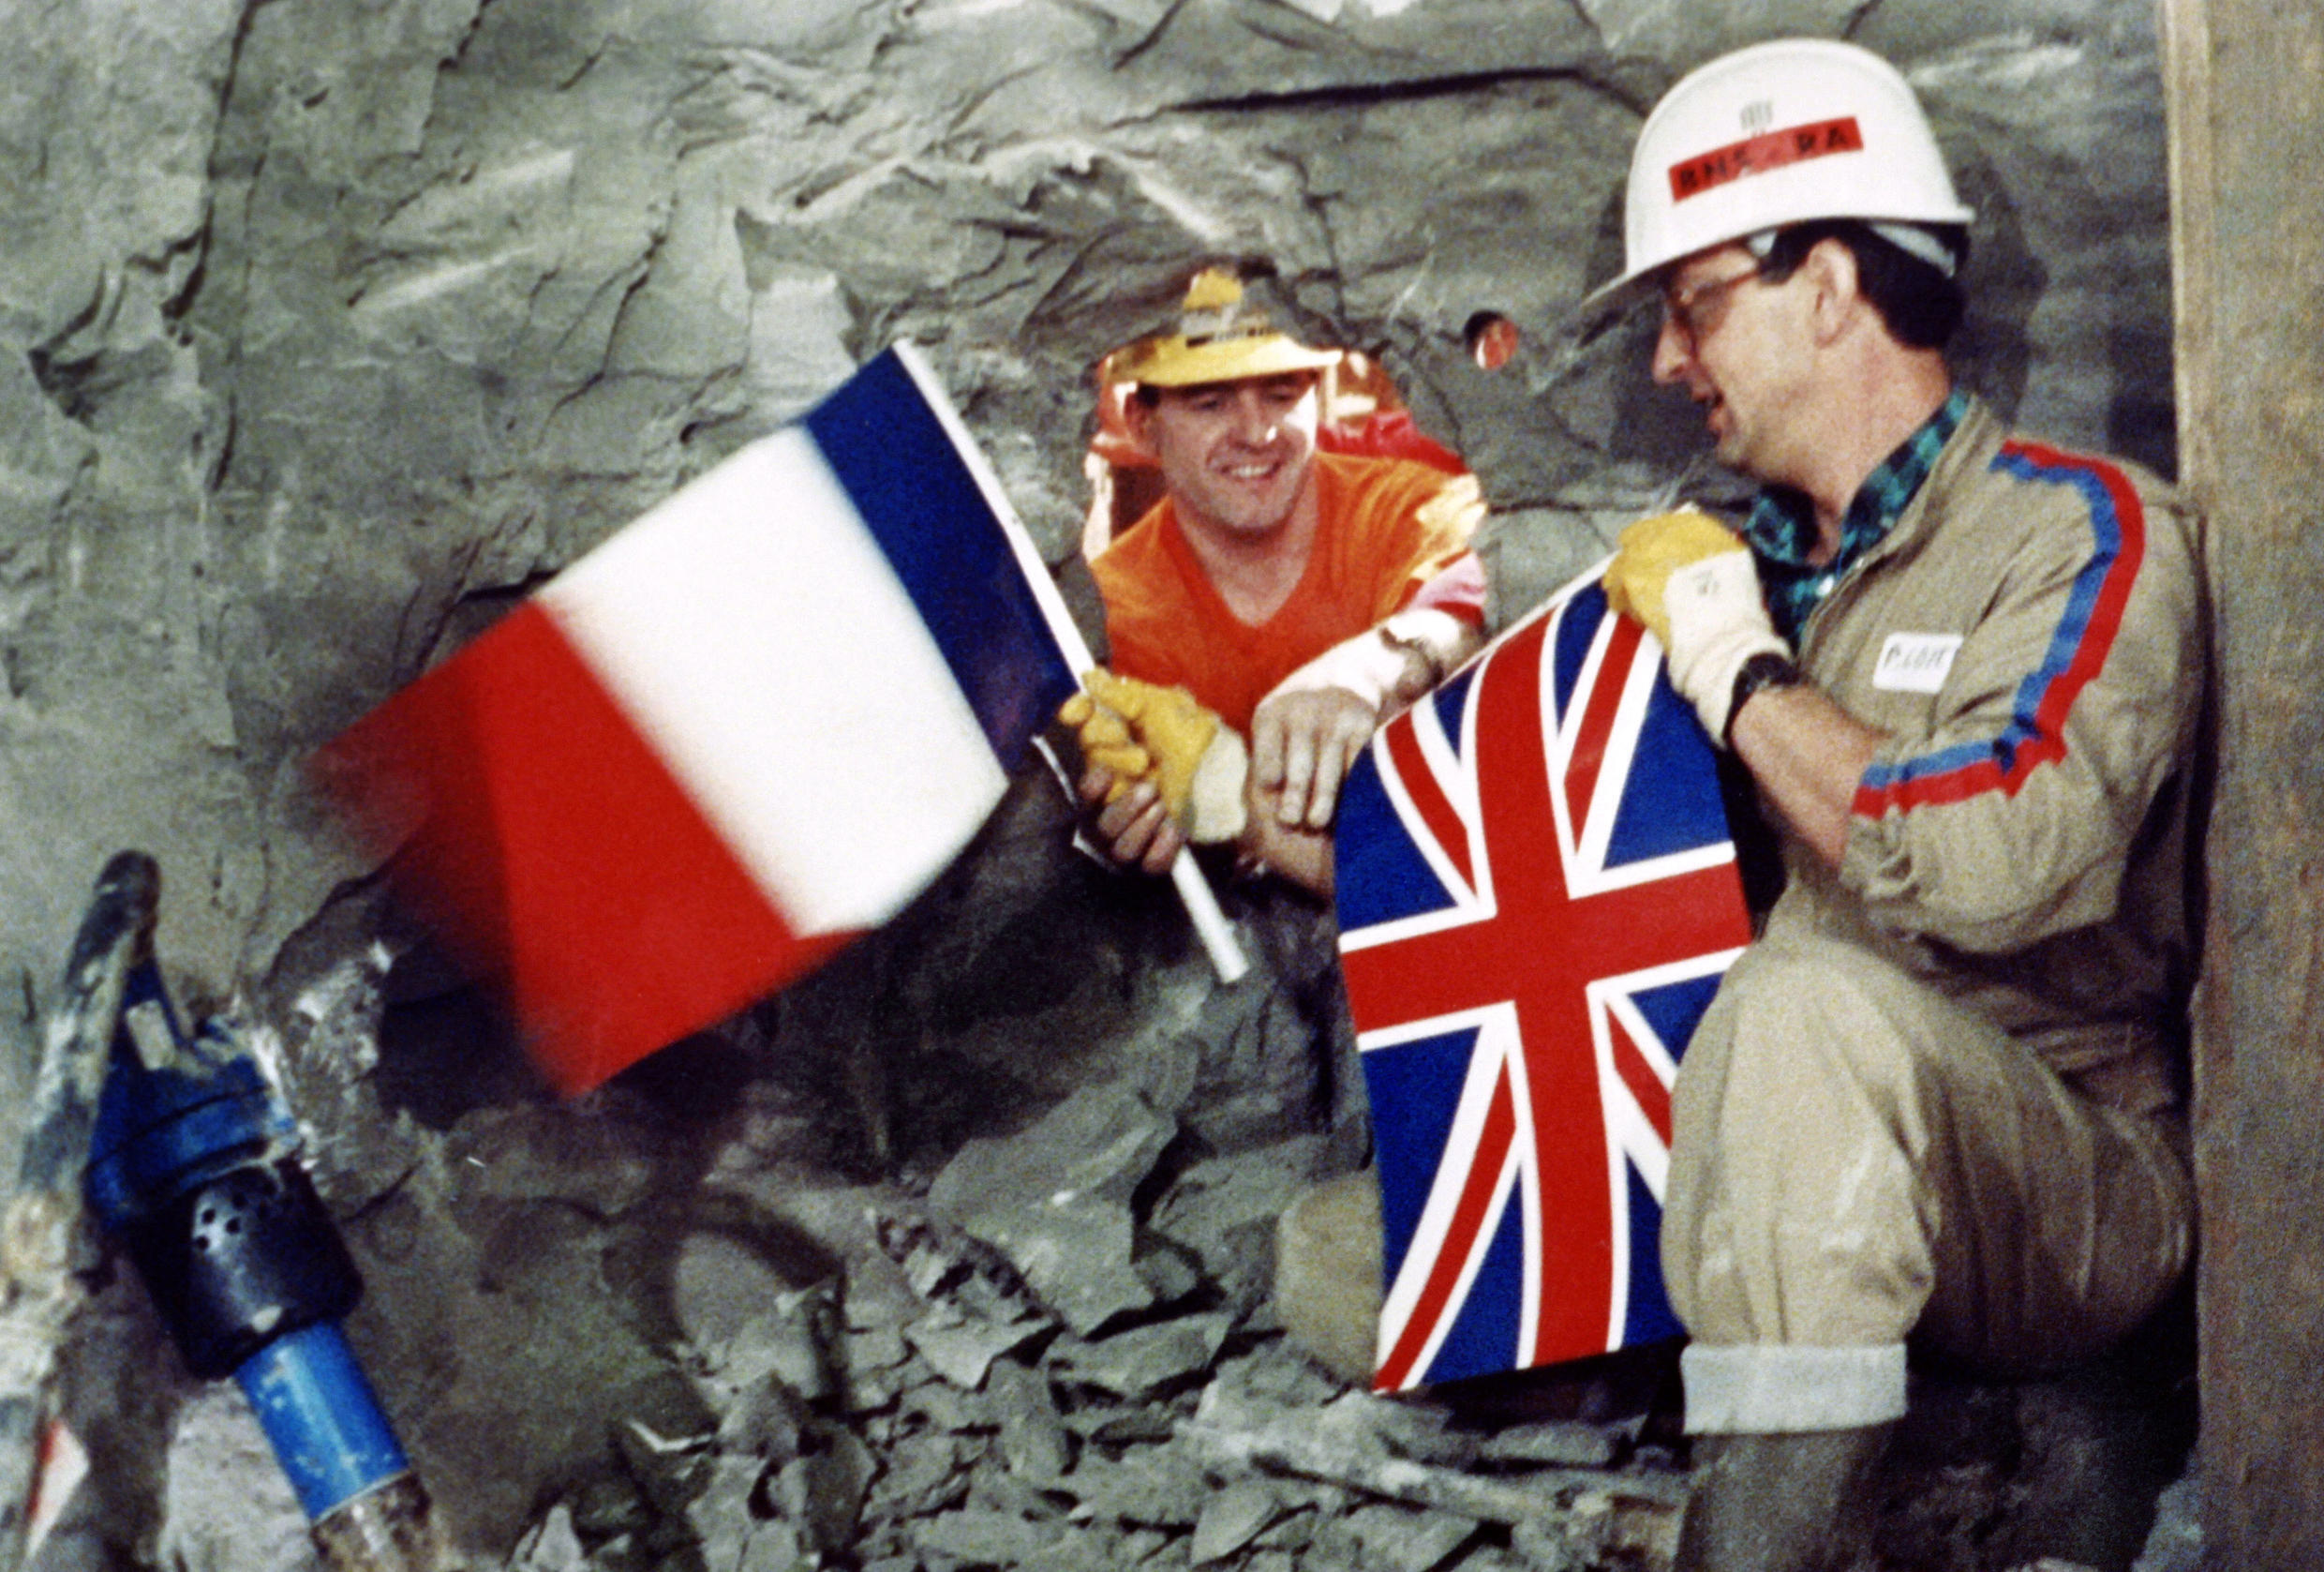 On 1 December 1990 tunnel workers Philippe Cozette (R) from France an Graham Fagg(L) from the UK meet under the Channel